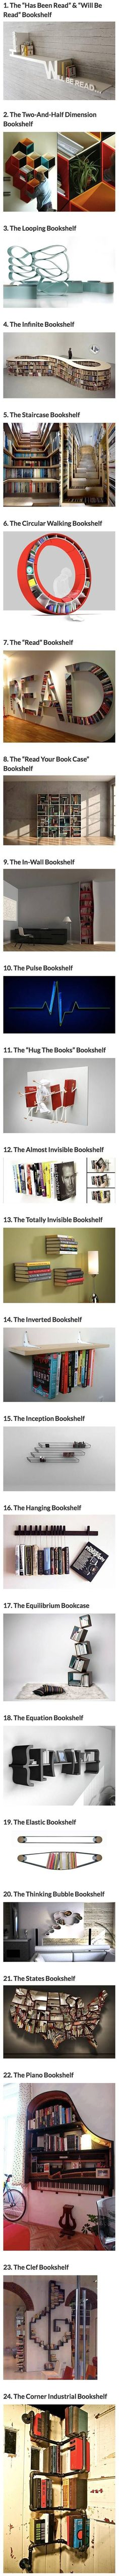 Cool and creative bookshelves - Imgur